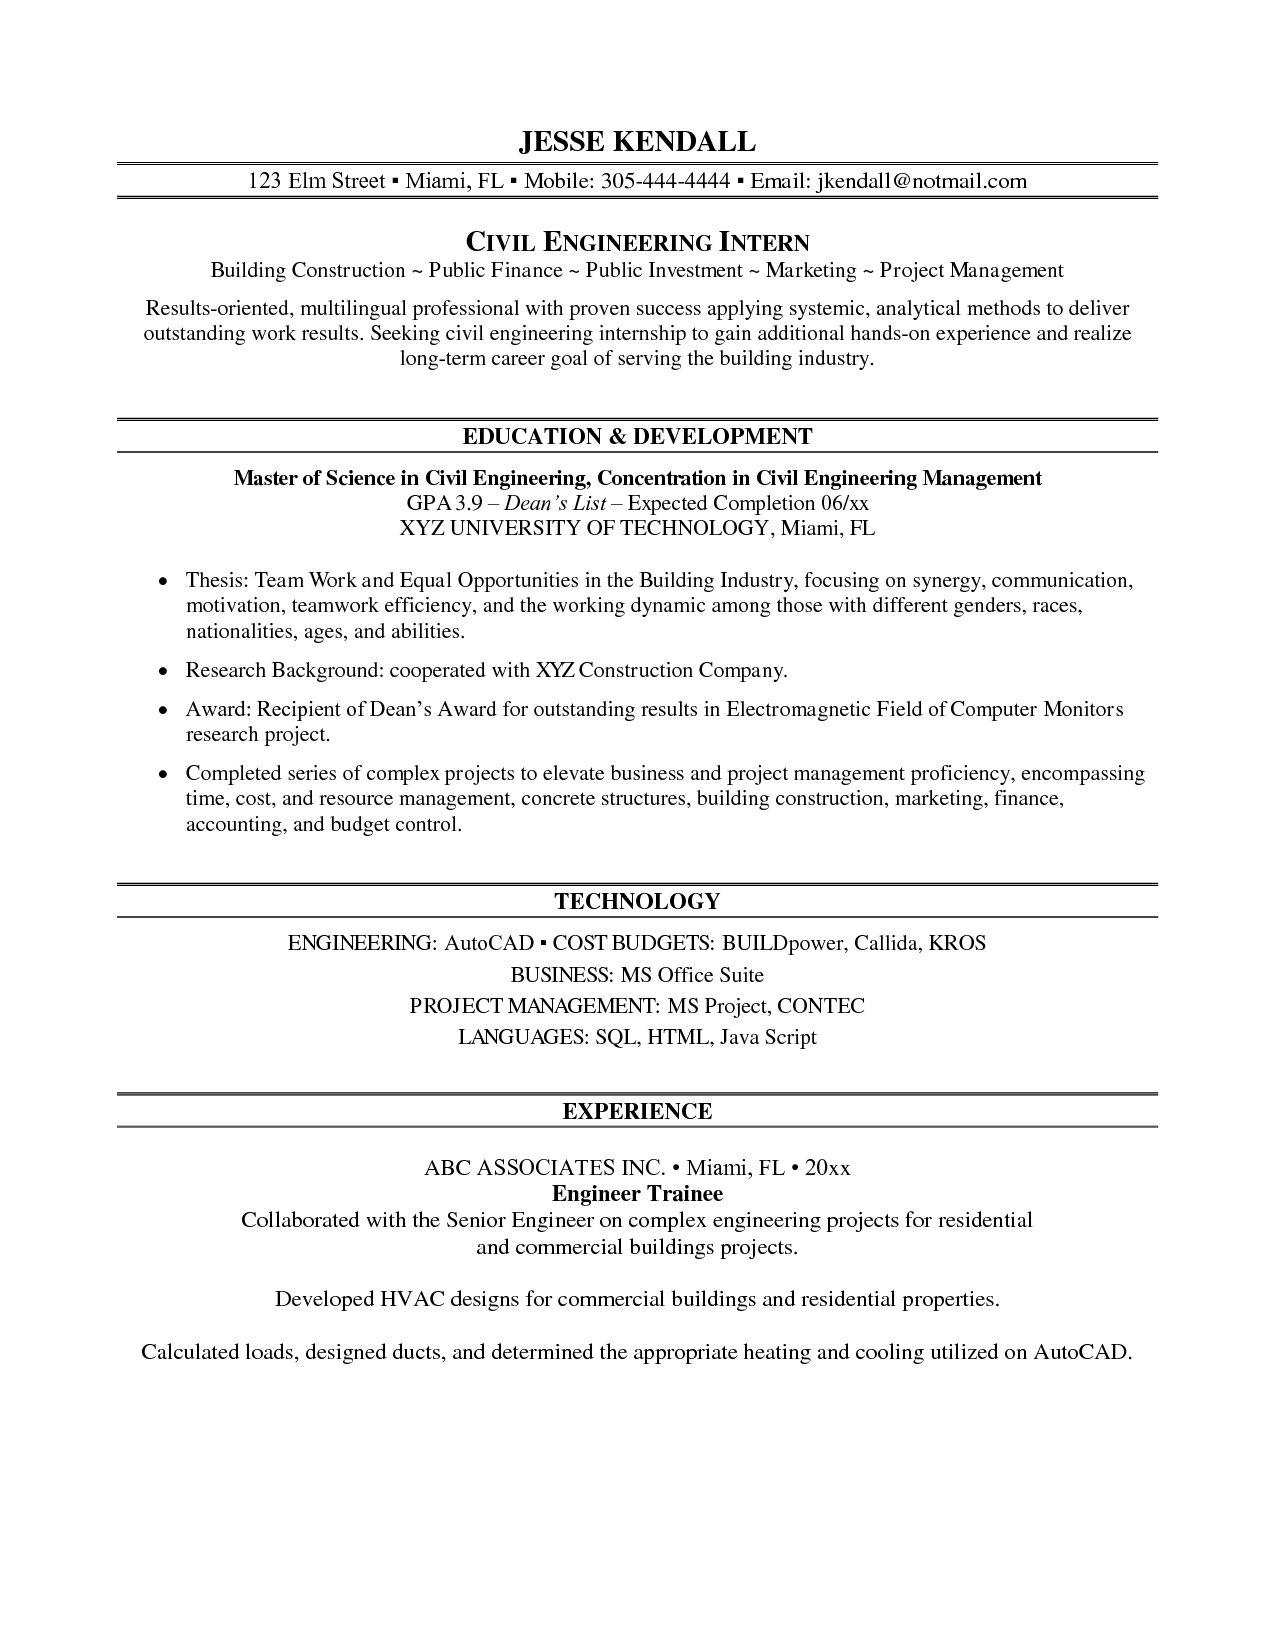 Senior Electrical Engineer Sample Resume Internship On Resume Best Template Collection  Httpwww